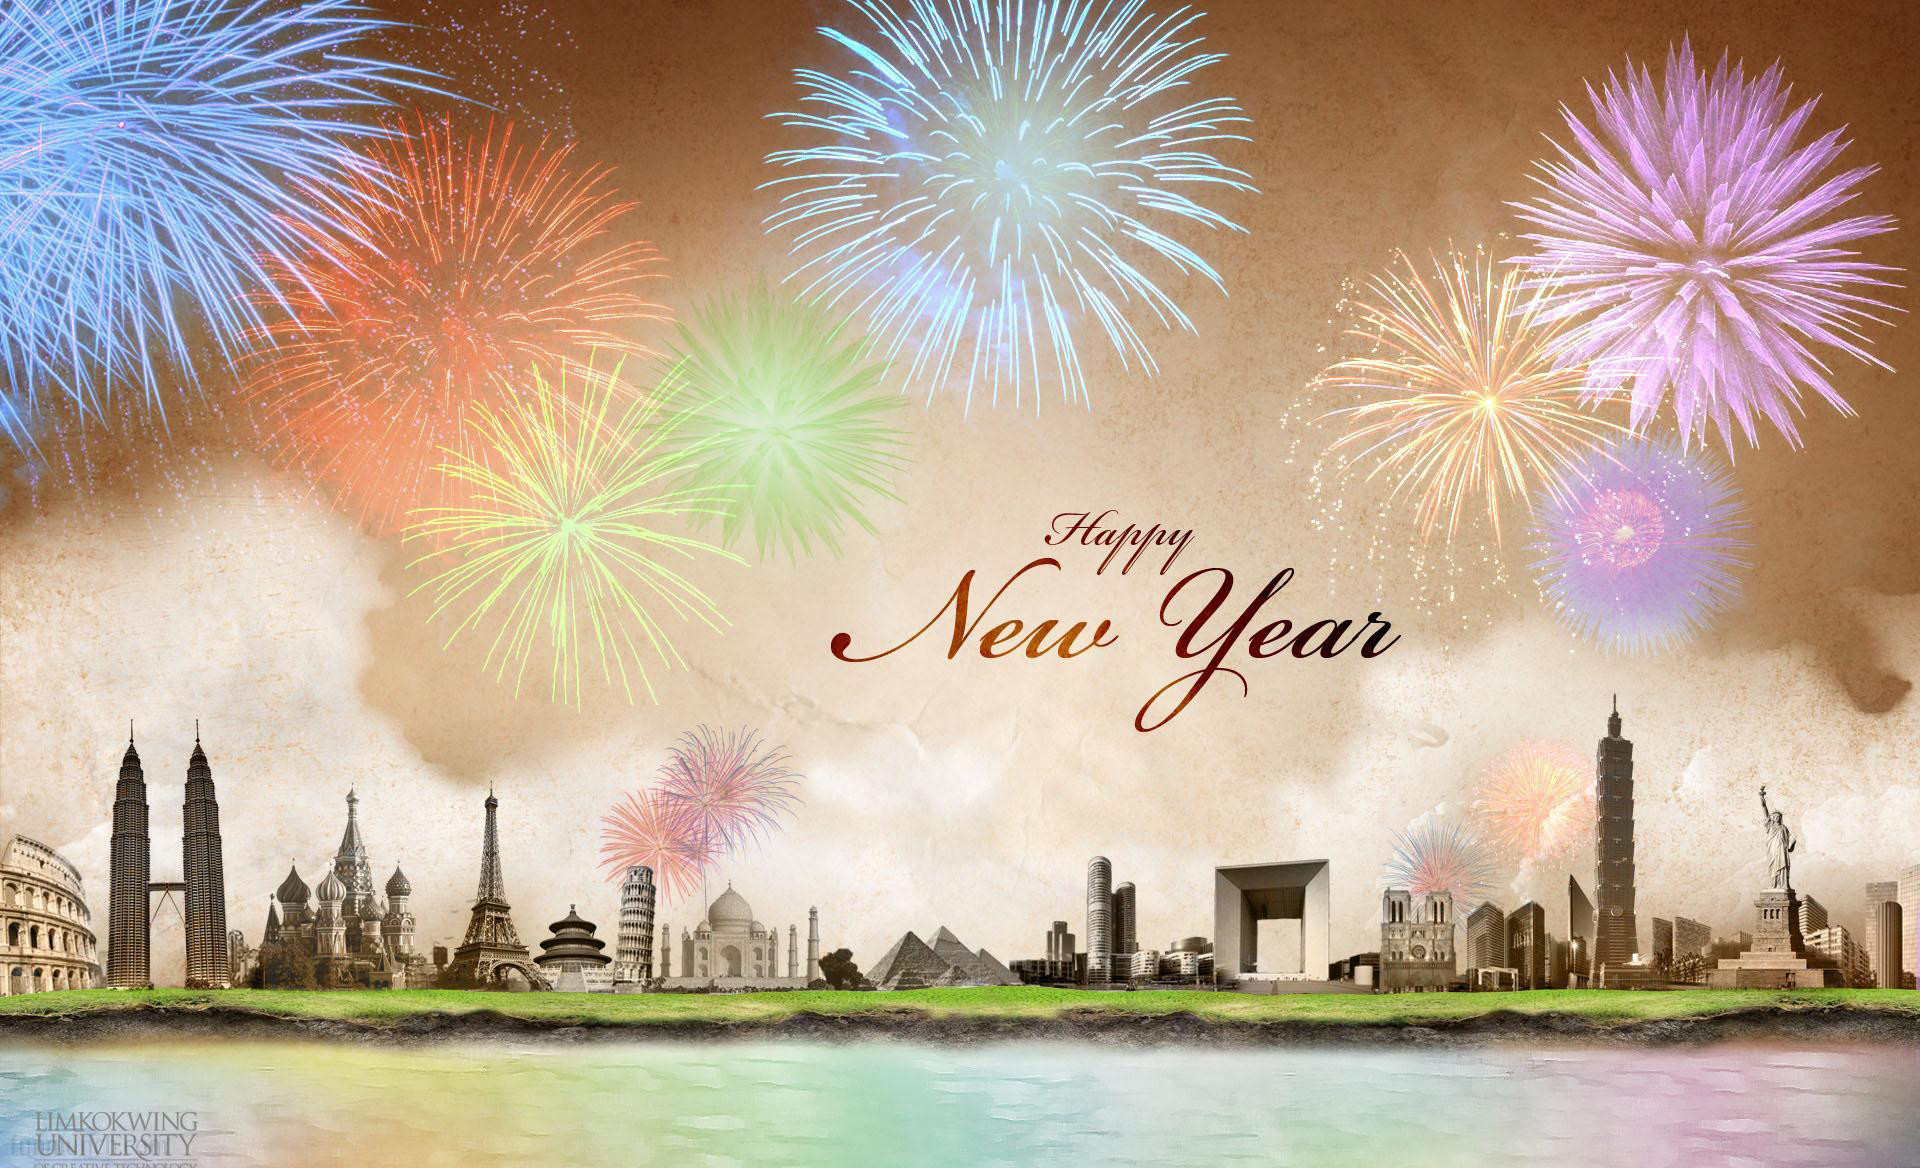 1920x1168 tags 1920x1168 new year background